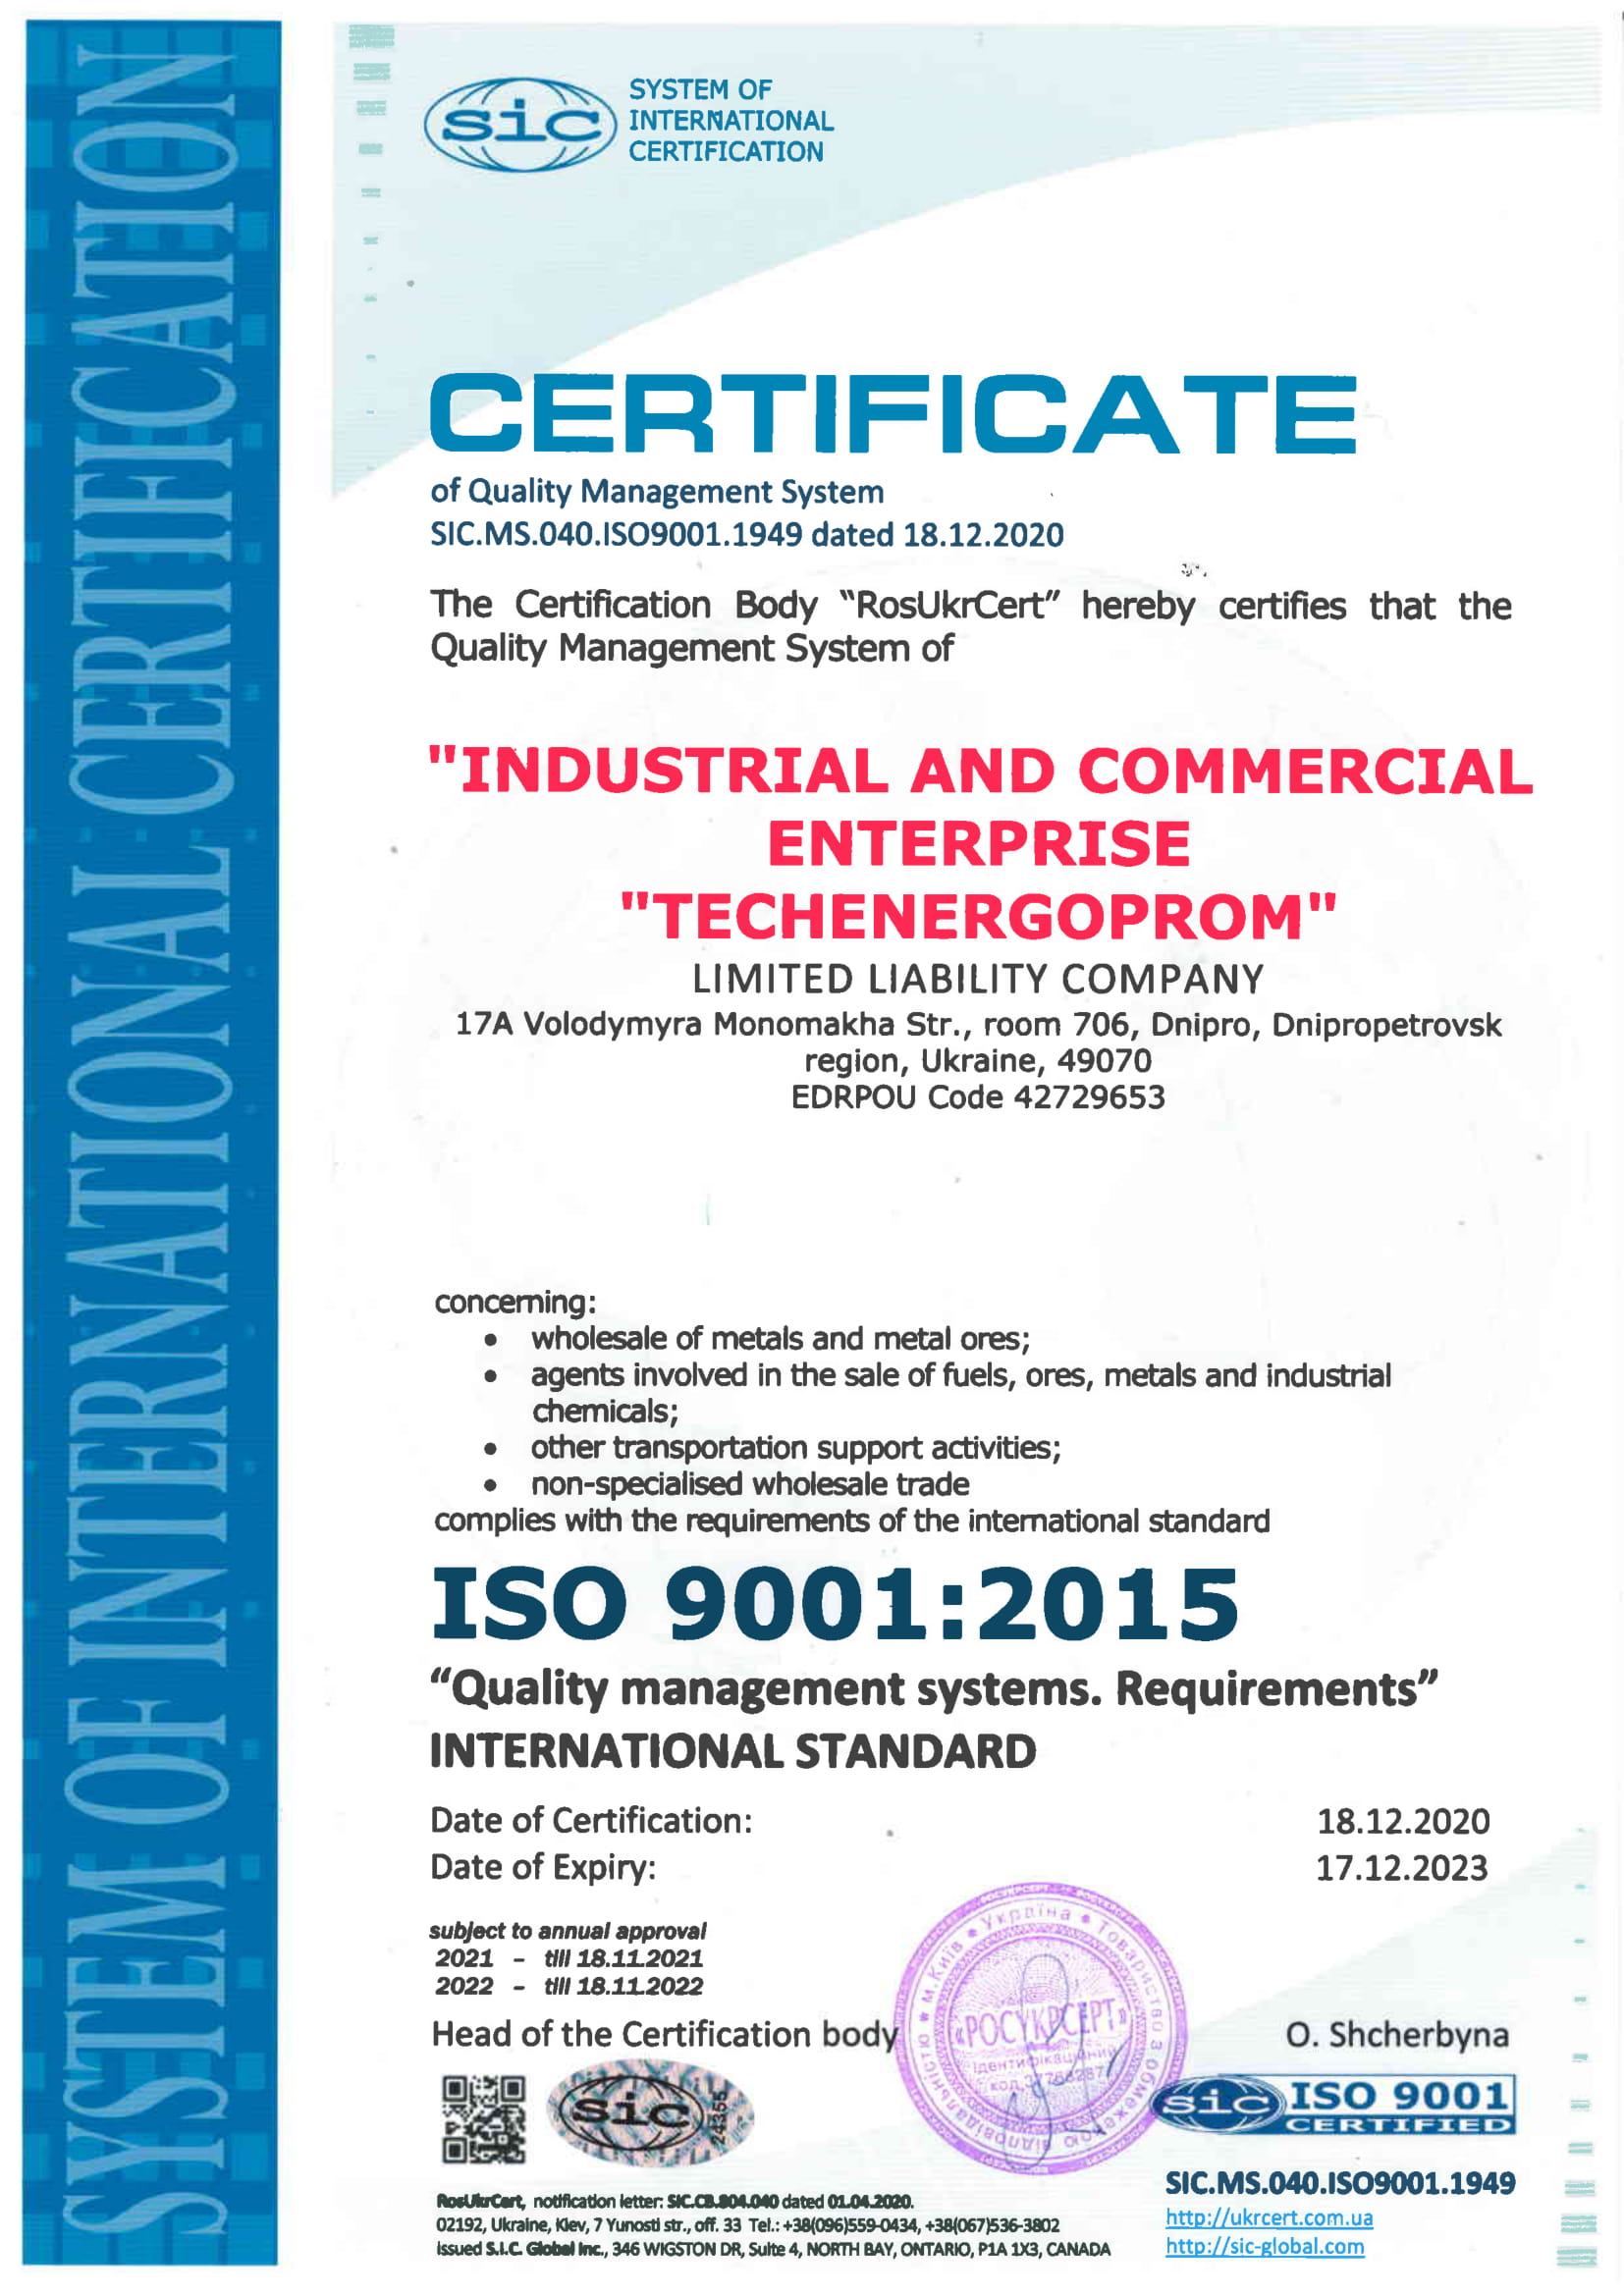 What ISO 9001-2015 confirms